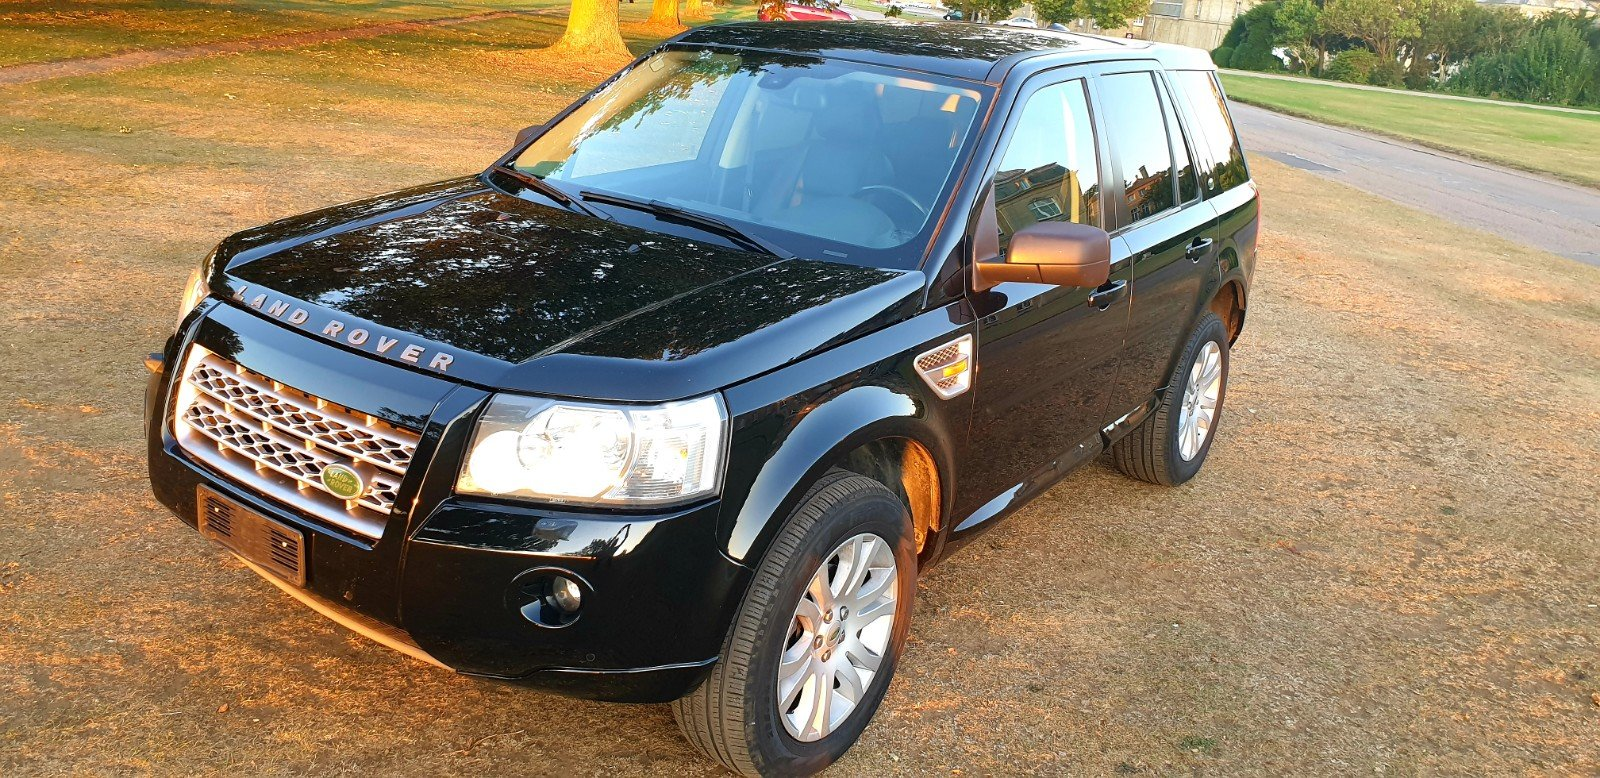 2008 LHD LAND ROVER FREELANDER 2.2 td4 LEFT HAND DRIVE For Sale (picture 3 of 6)